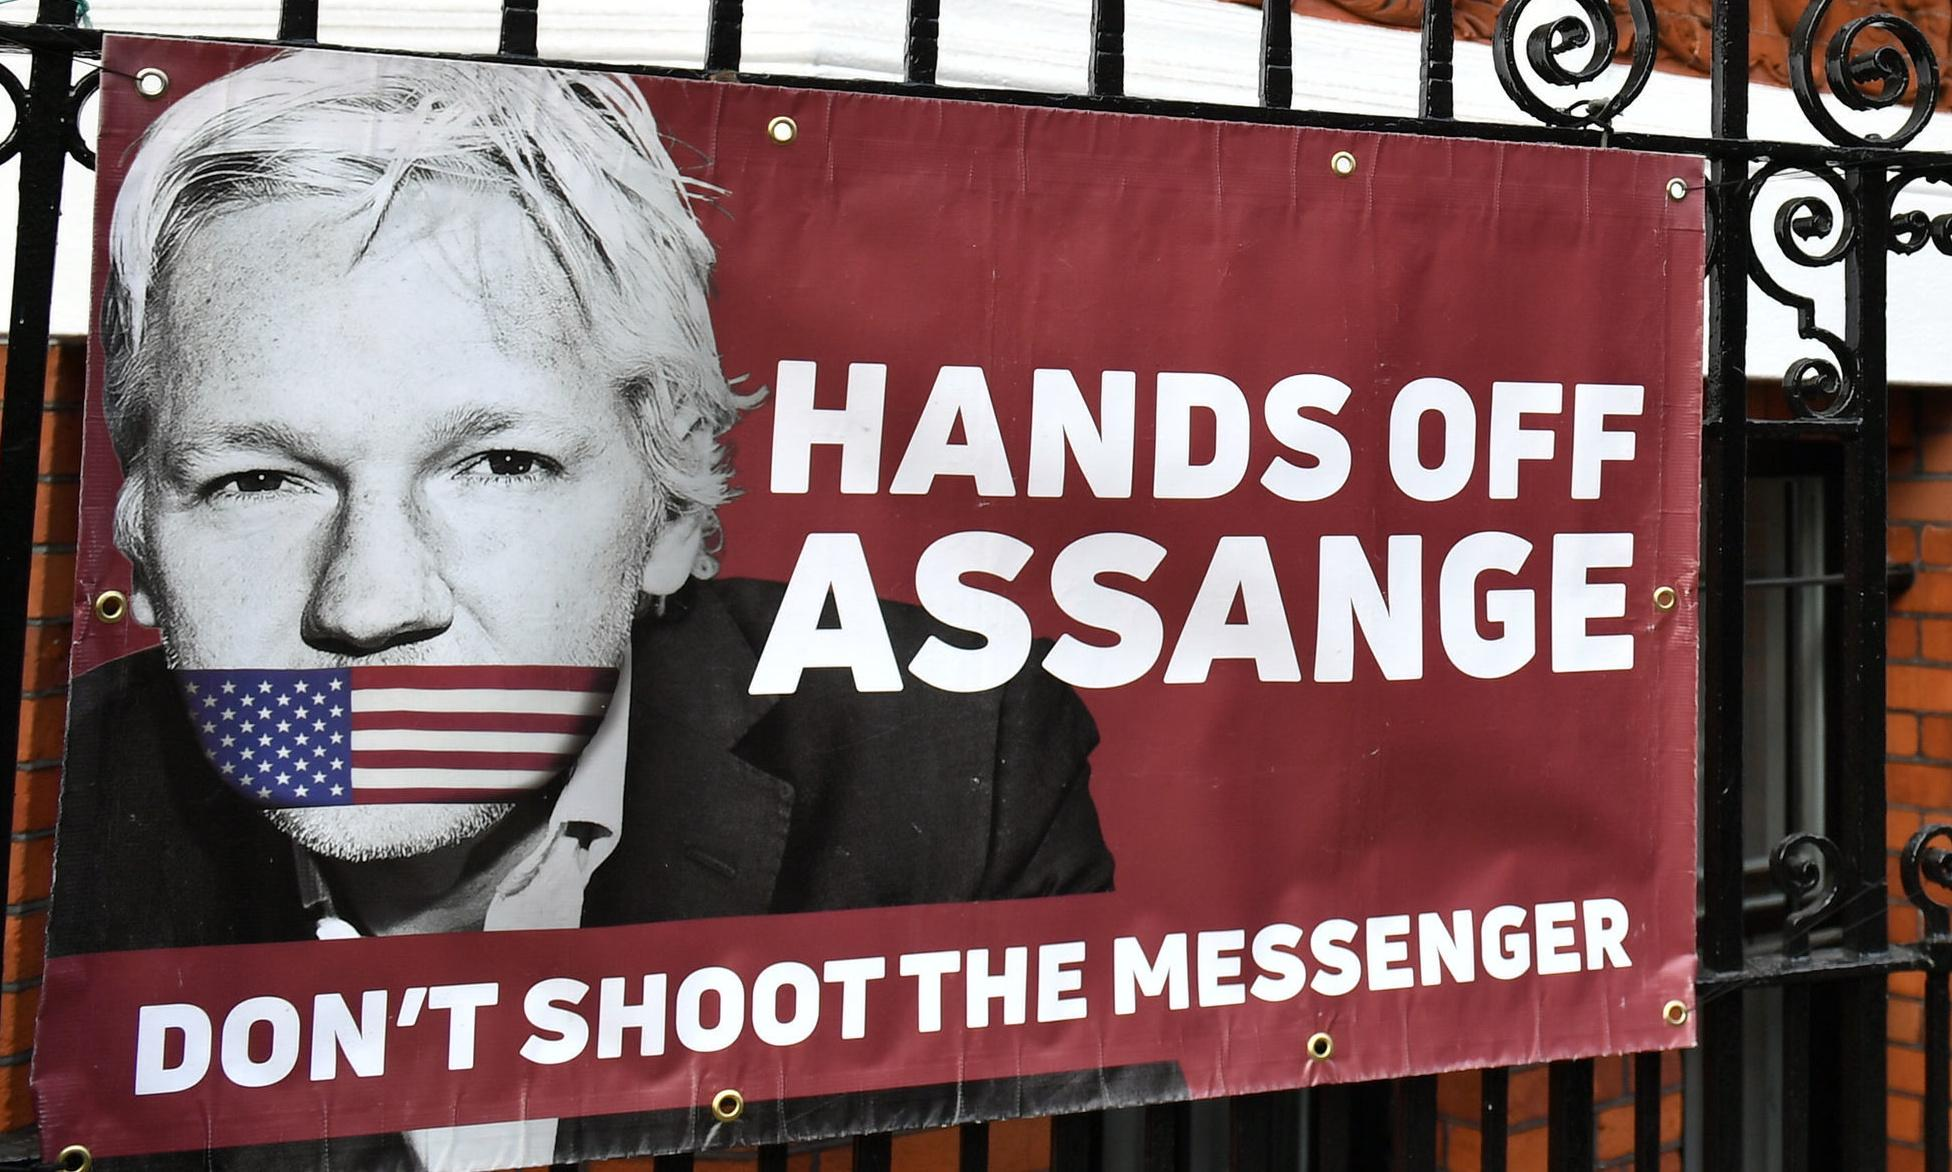 Assange extradition could test patience of US allies, Bob Carr warns